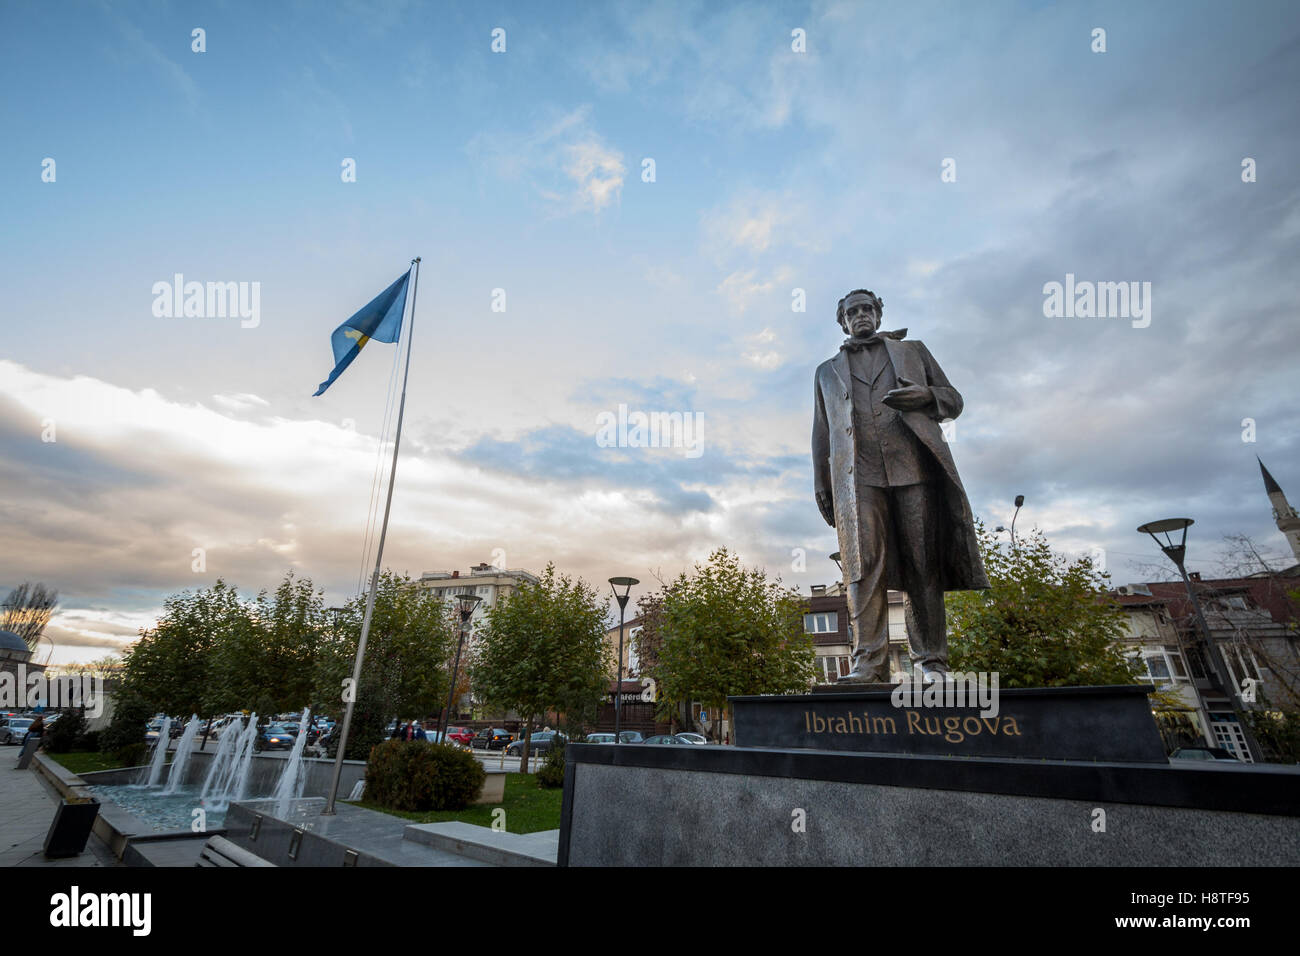 Statue dedicated to Ibrahim Rugova, first president of the Republic of Kosovo in Pristina, capital city of the country - Stock Image